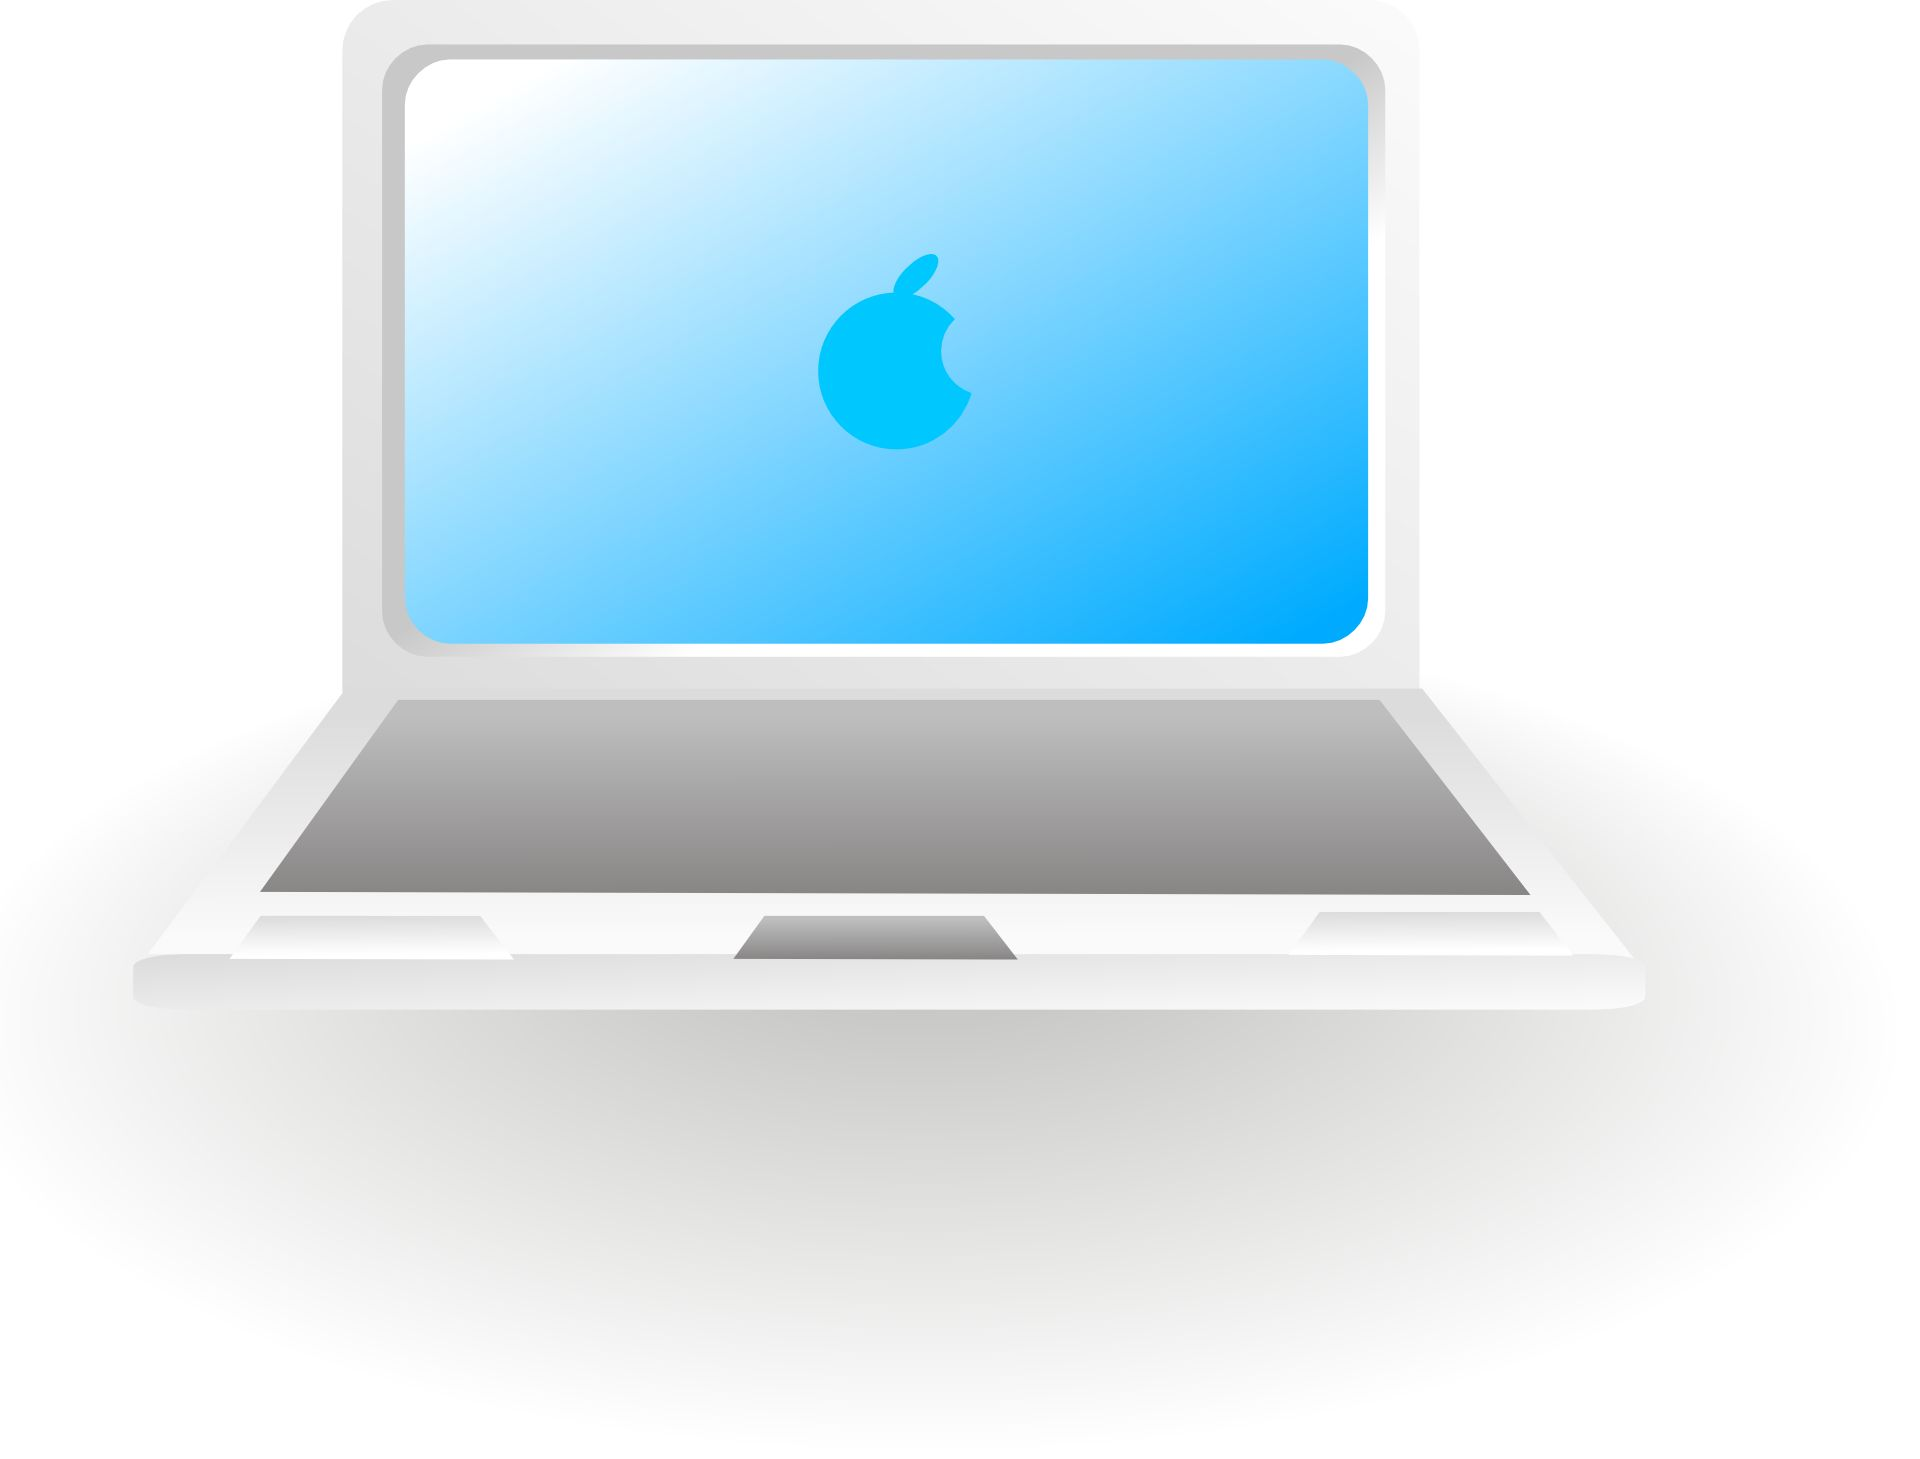 Apple Laptop Computer Clip Art.